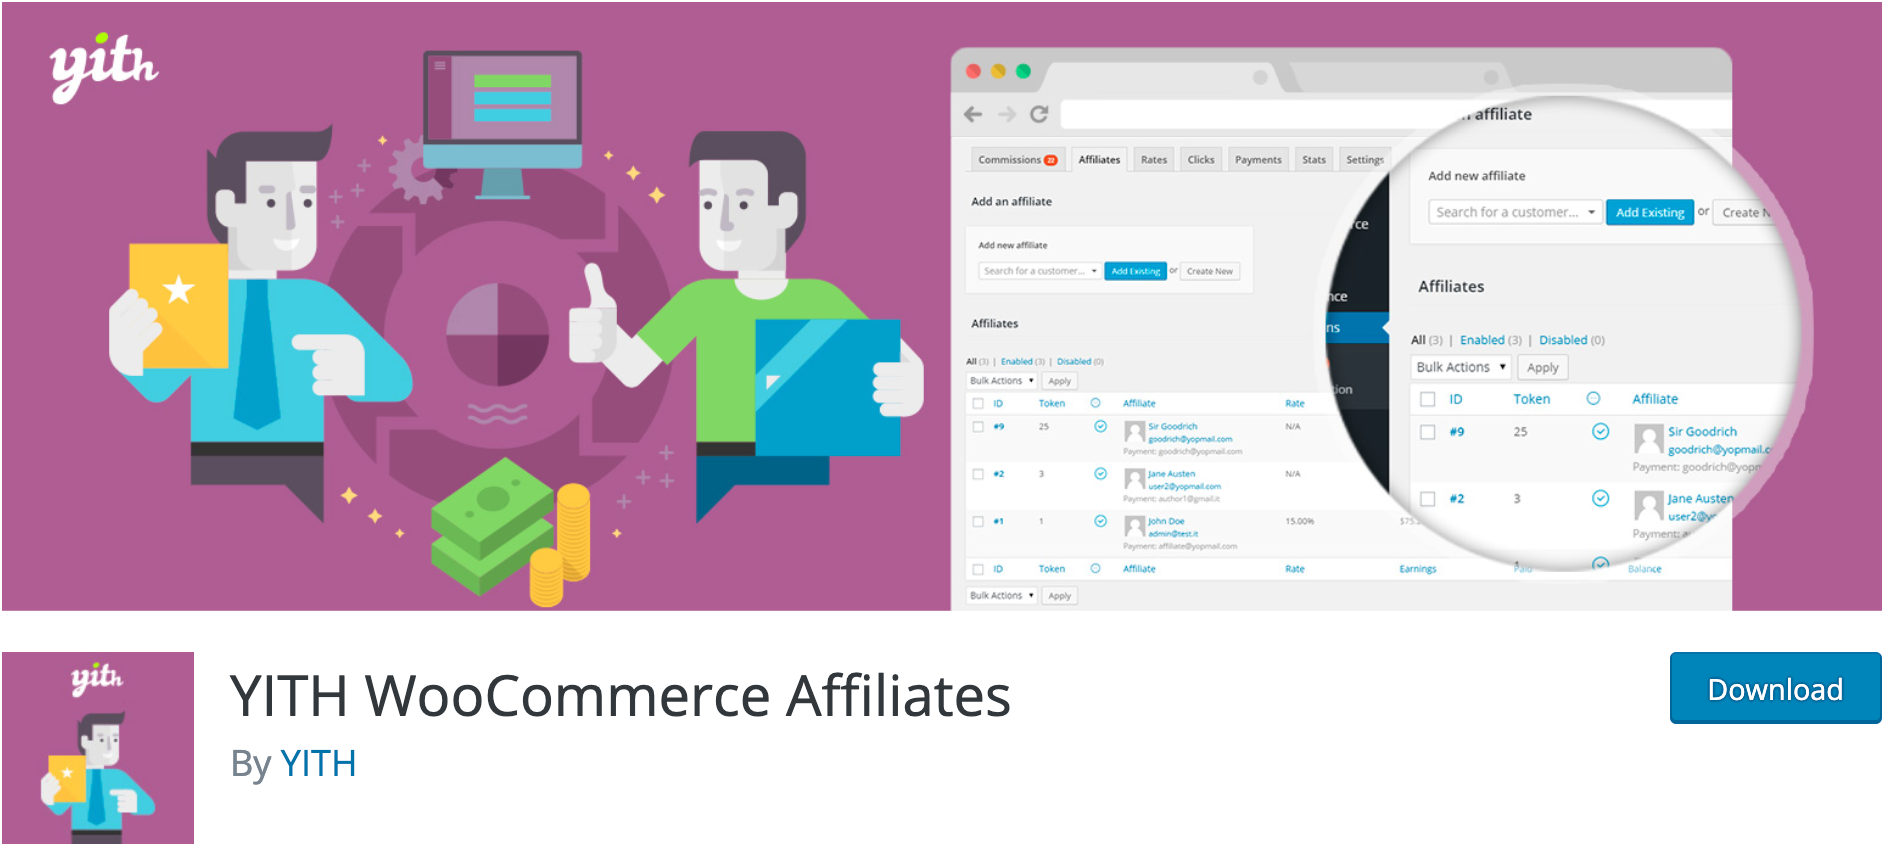 YITH WooCommerce Affiliates – Affiliates Plugin